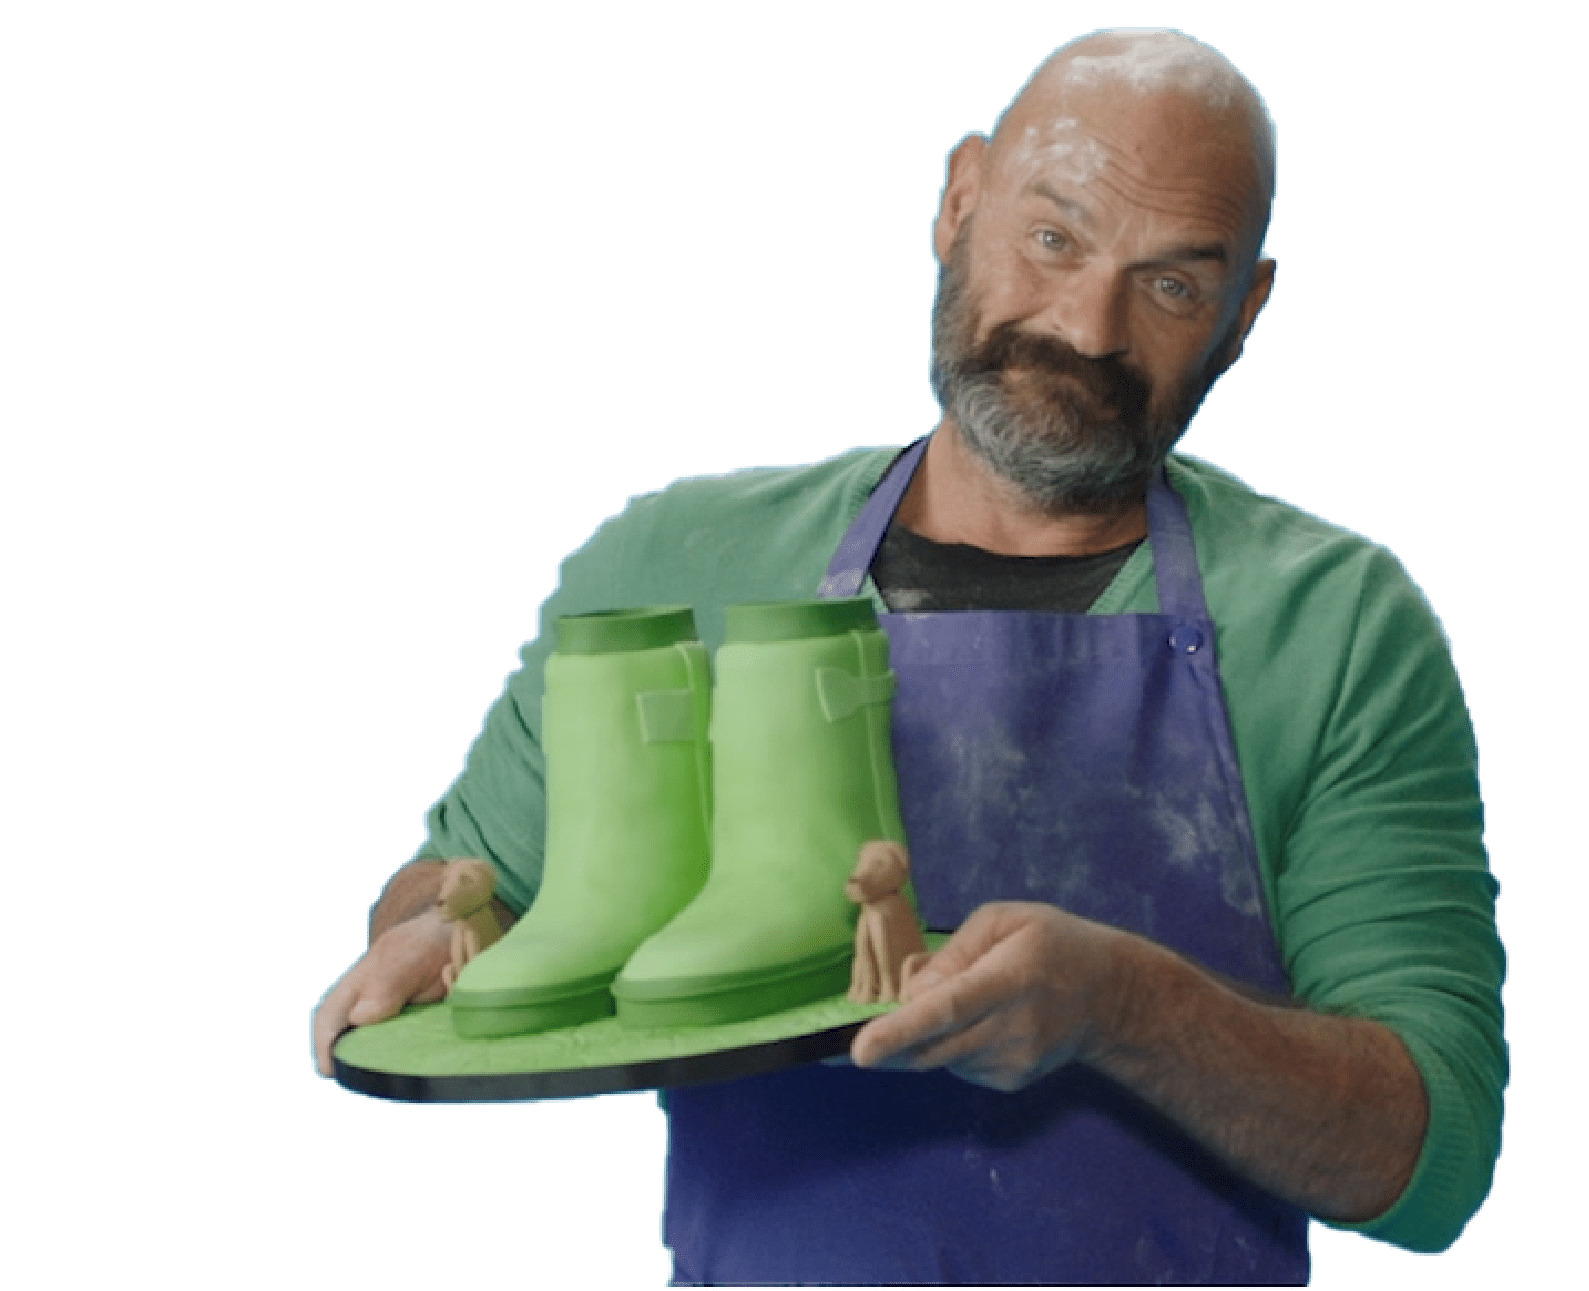 A man holding a Welly Cake